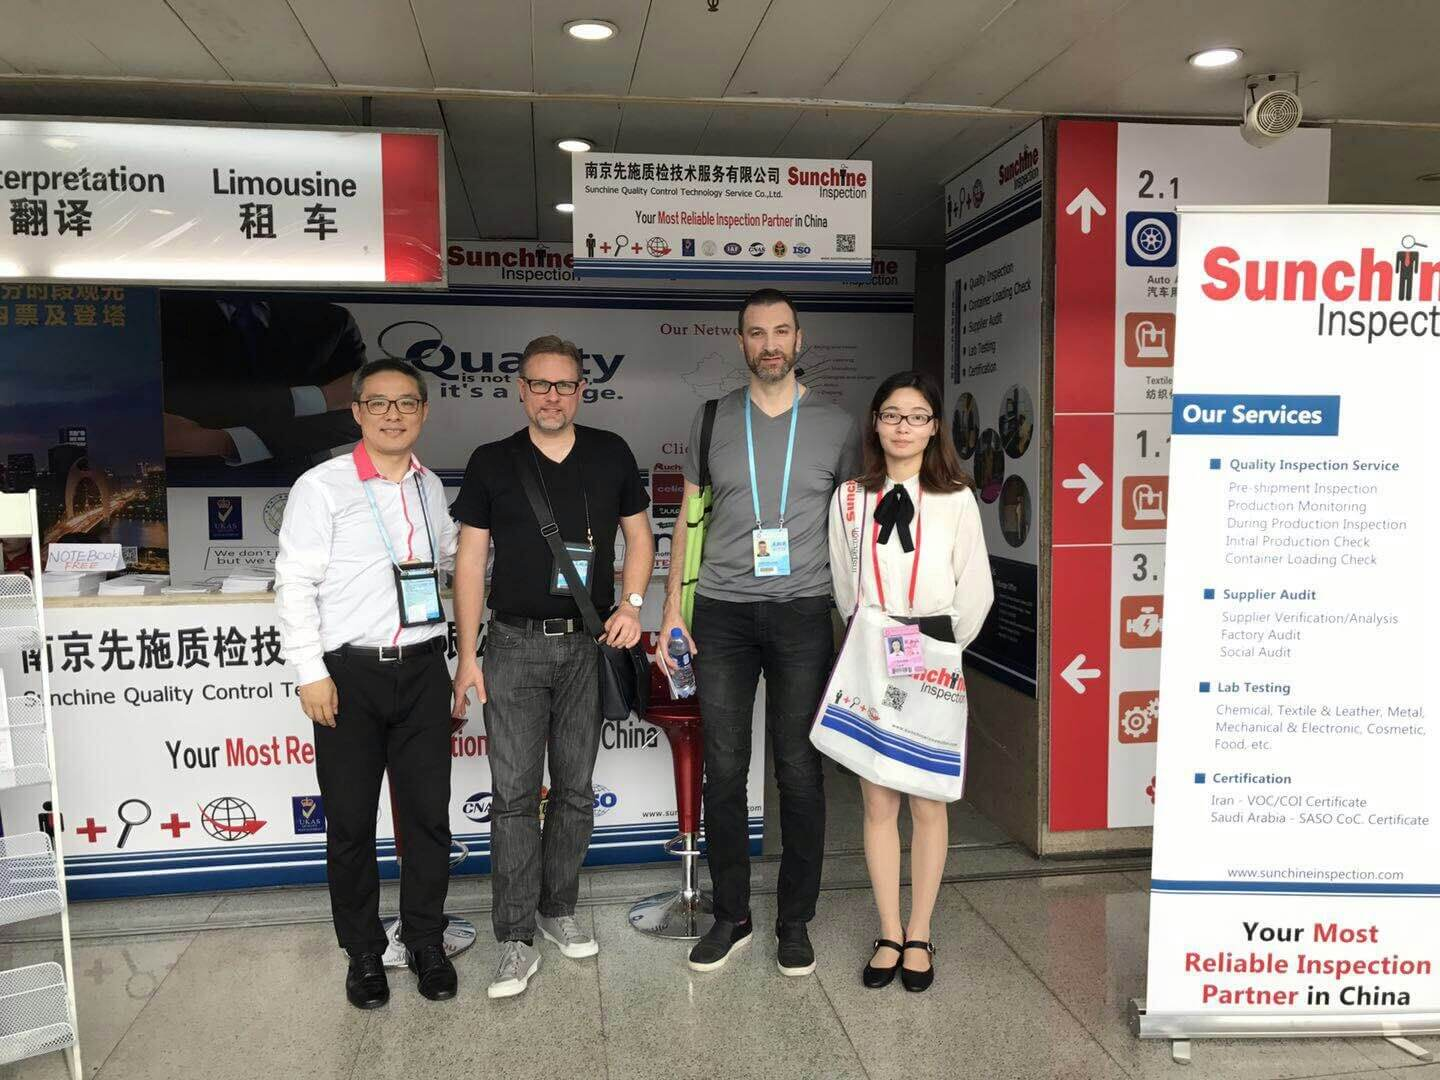 Canton Fair Phase 1 Ended Today  – Apr 19, 2018